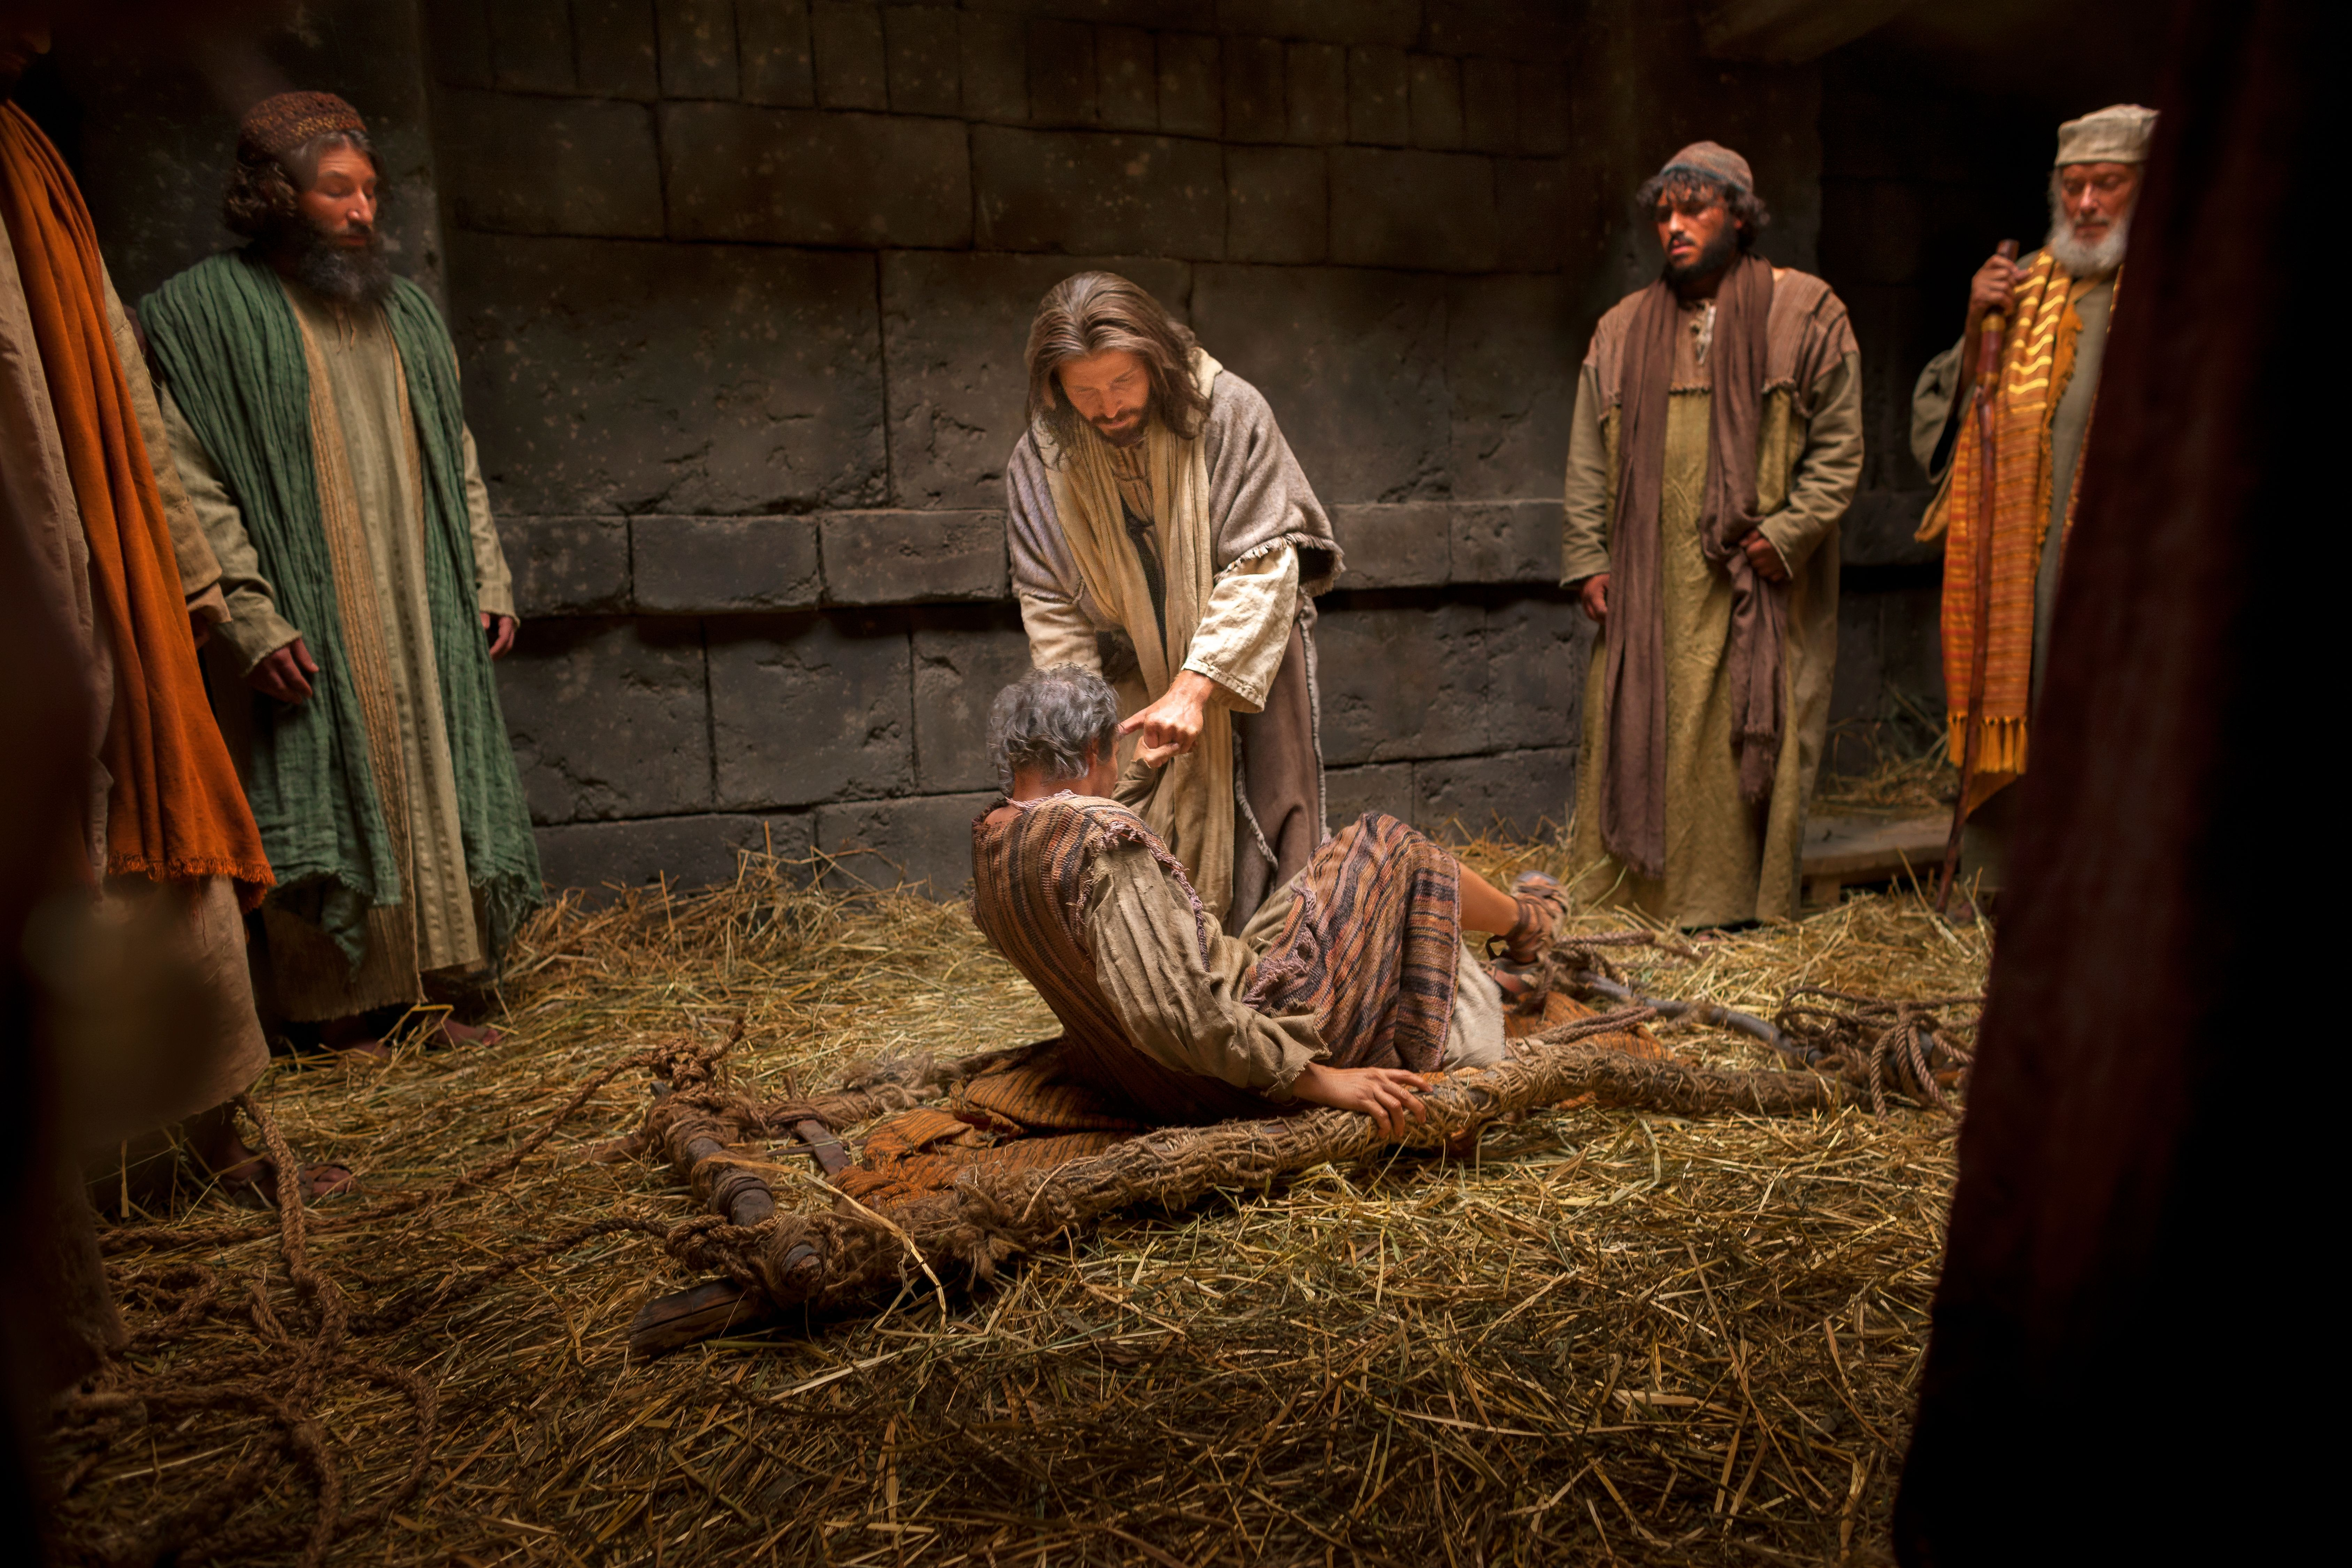 Christ healing a man with palsy.